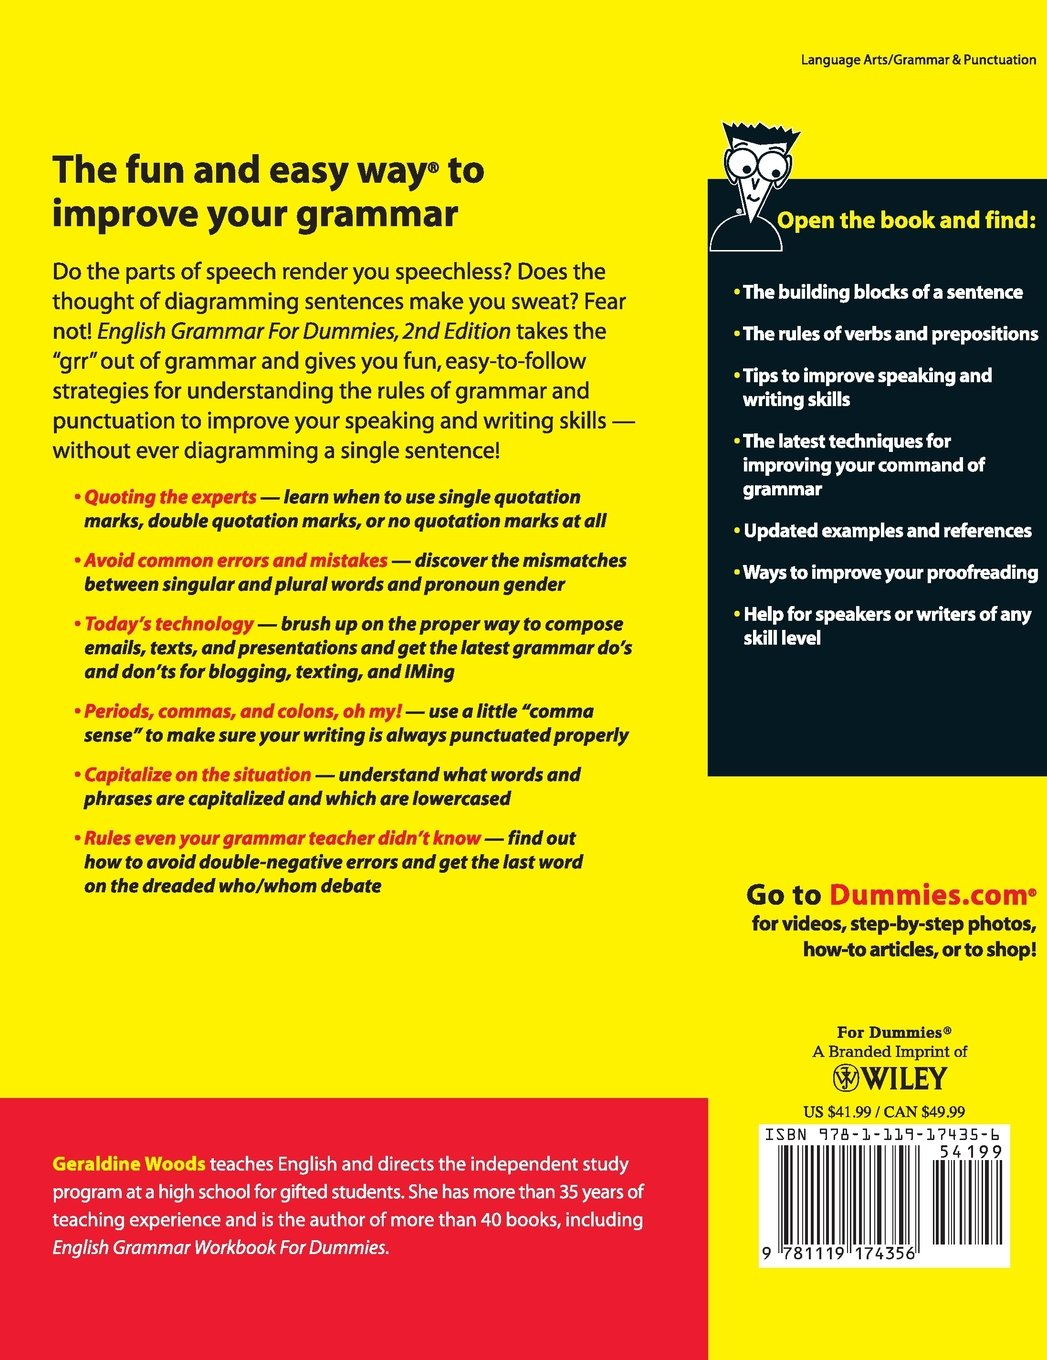 Buy English Grammar for Dummies Book Online at Low Prices in India | English  Grammar for Dummies Reviews & Ratings - Amazon.in